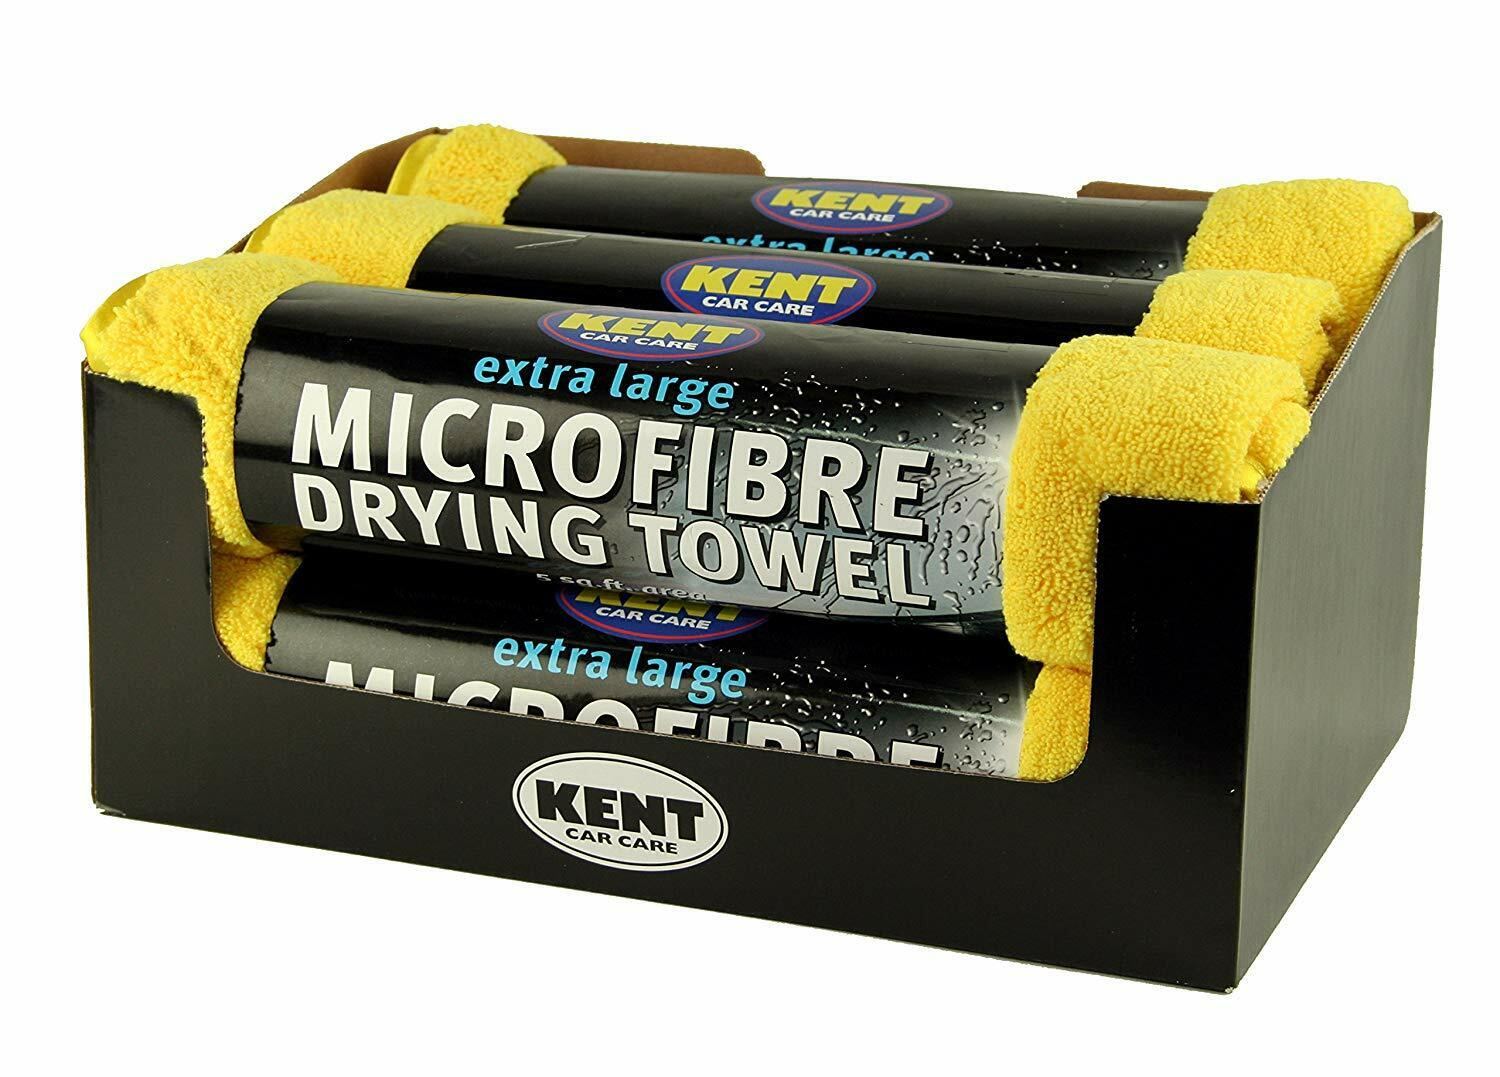 KENT MICROFIBRE TOWEL CLOTH EXTRA LARGE DRYING CAR CARE VALETING 5 SQ FT 6 PACK